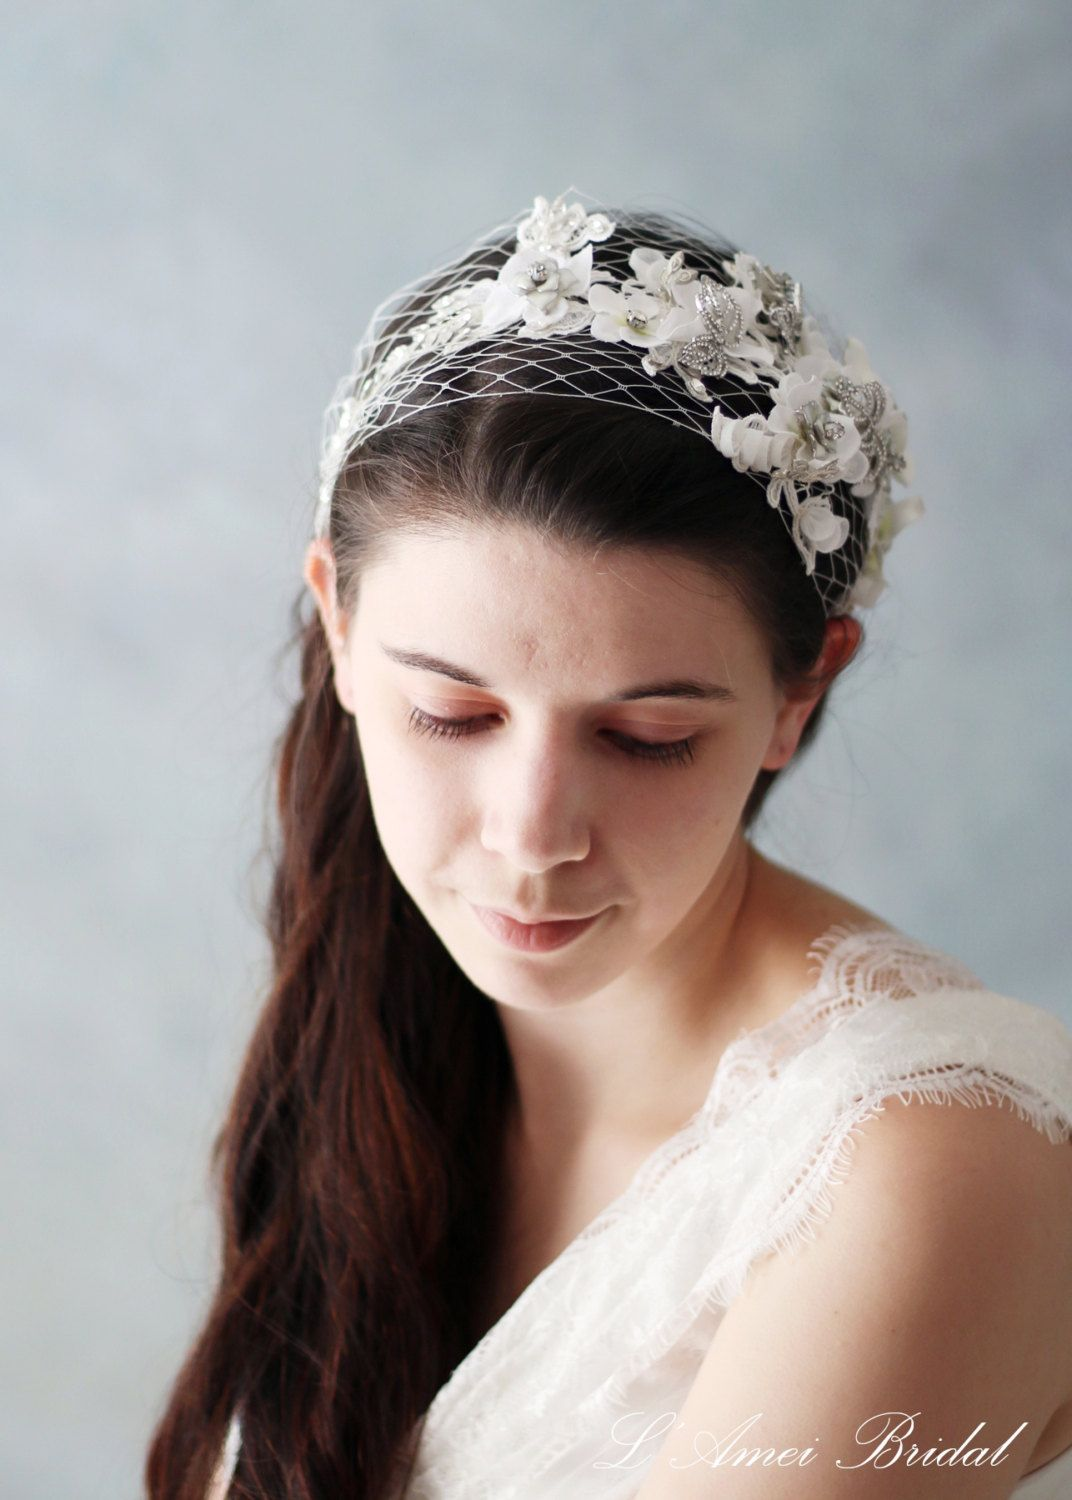 Wedding hair band with small white flowers accented with bling wedding hair band with small white flowers accented with bling double satin ribbon white lace mightylinksfo